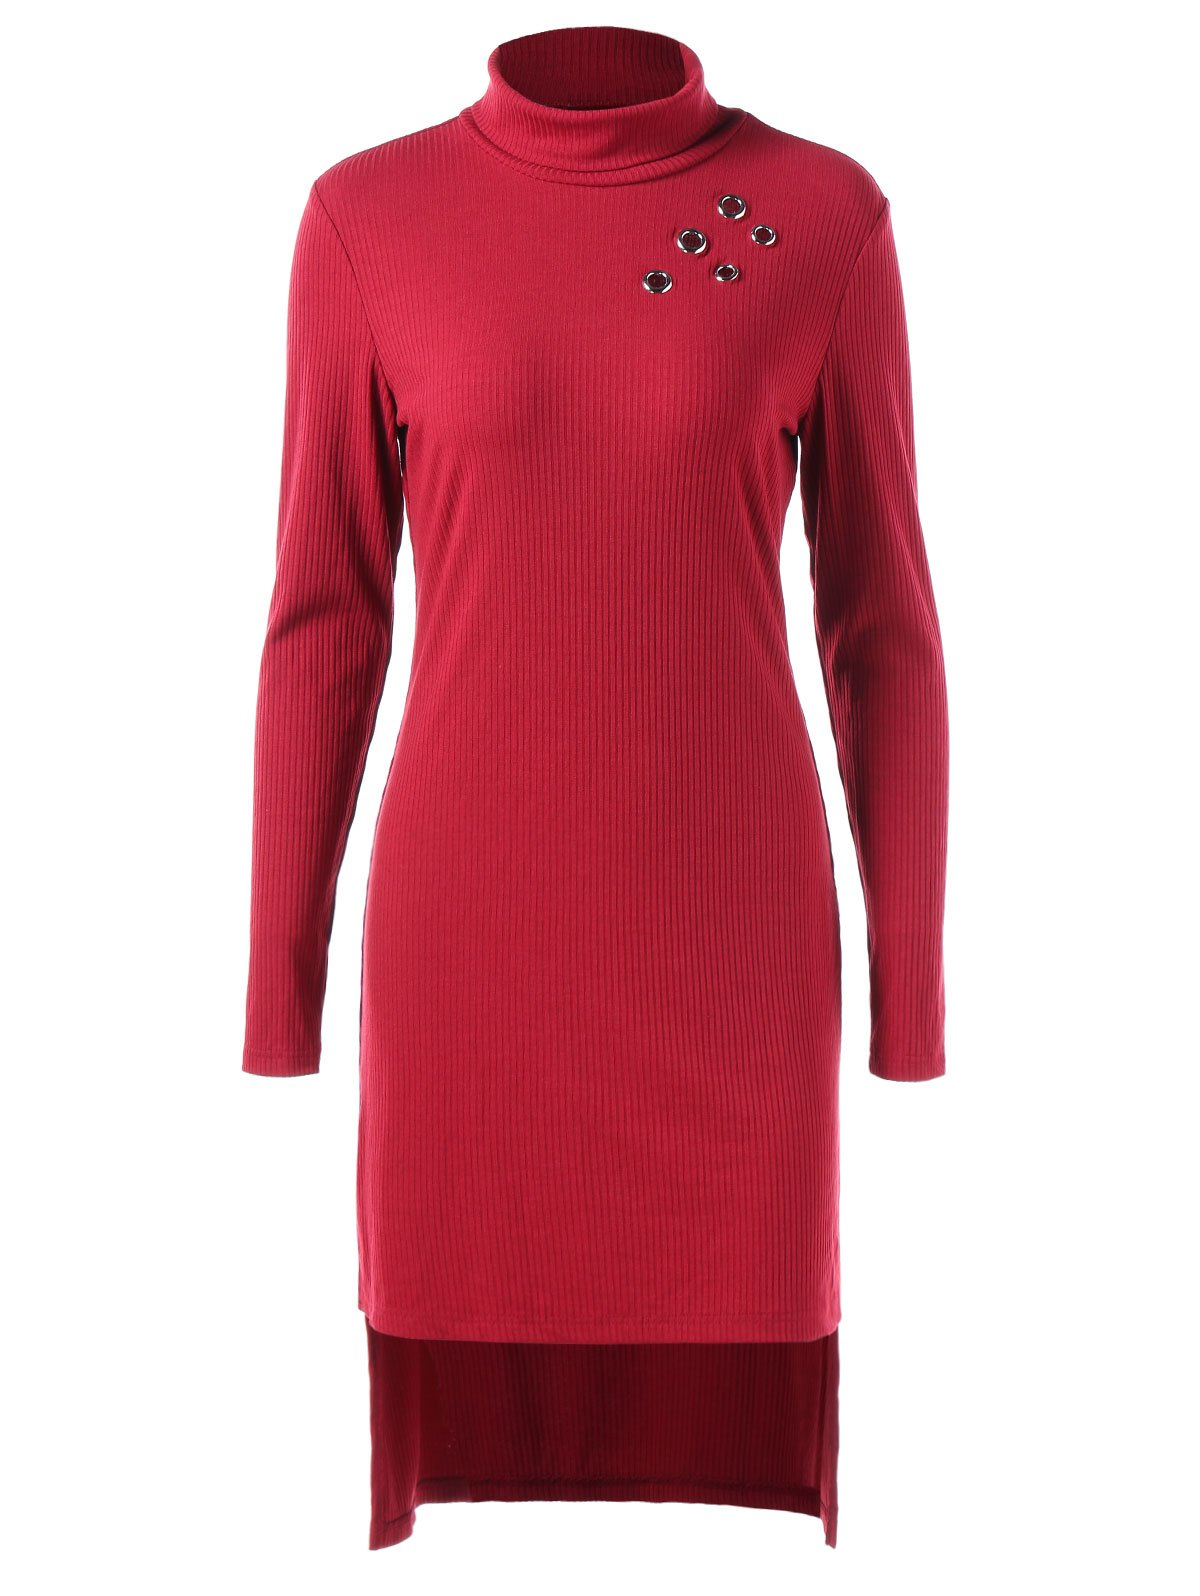 New Full Sleeve High Low Knit Dress